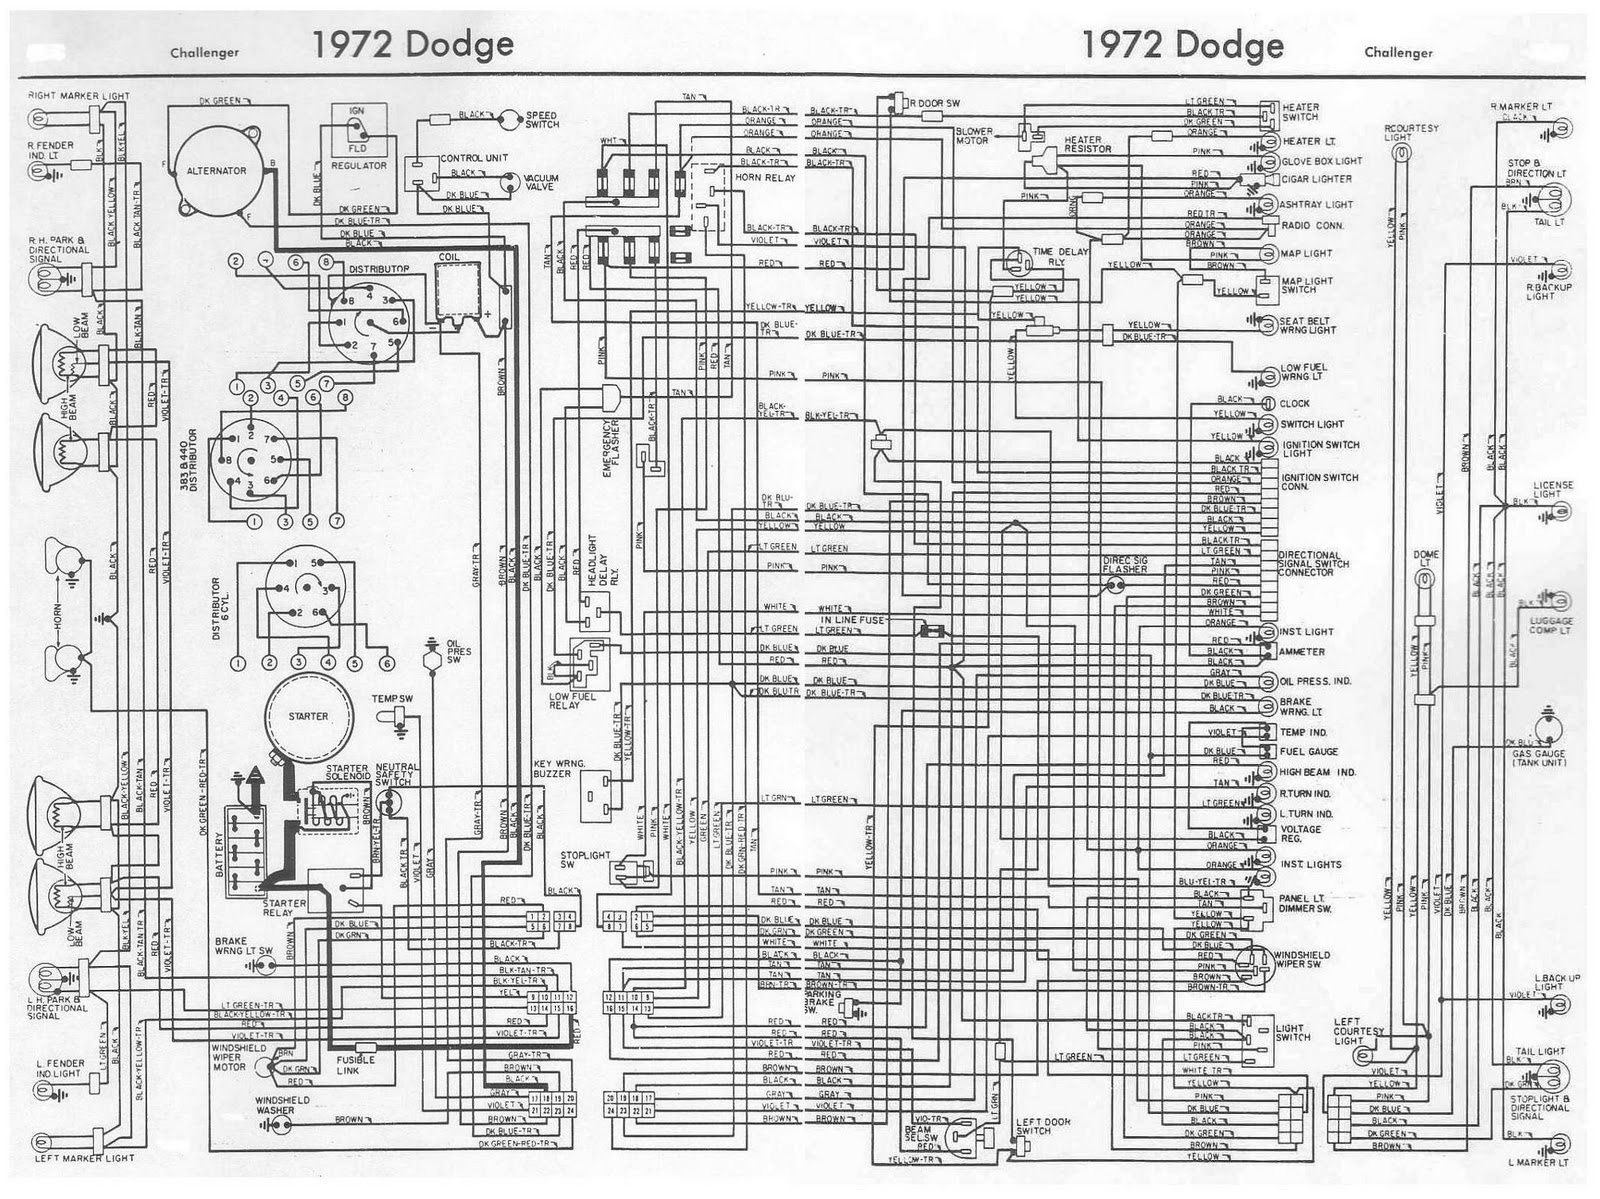 1973 Dodge Challenger Vacuum Diagram 1978 Wire 1975 Ford D100 Wiring 1974